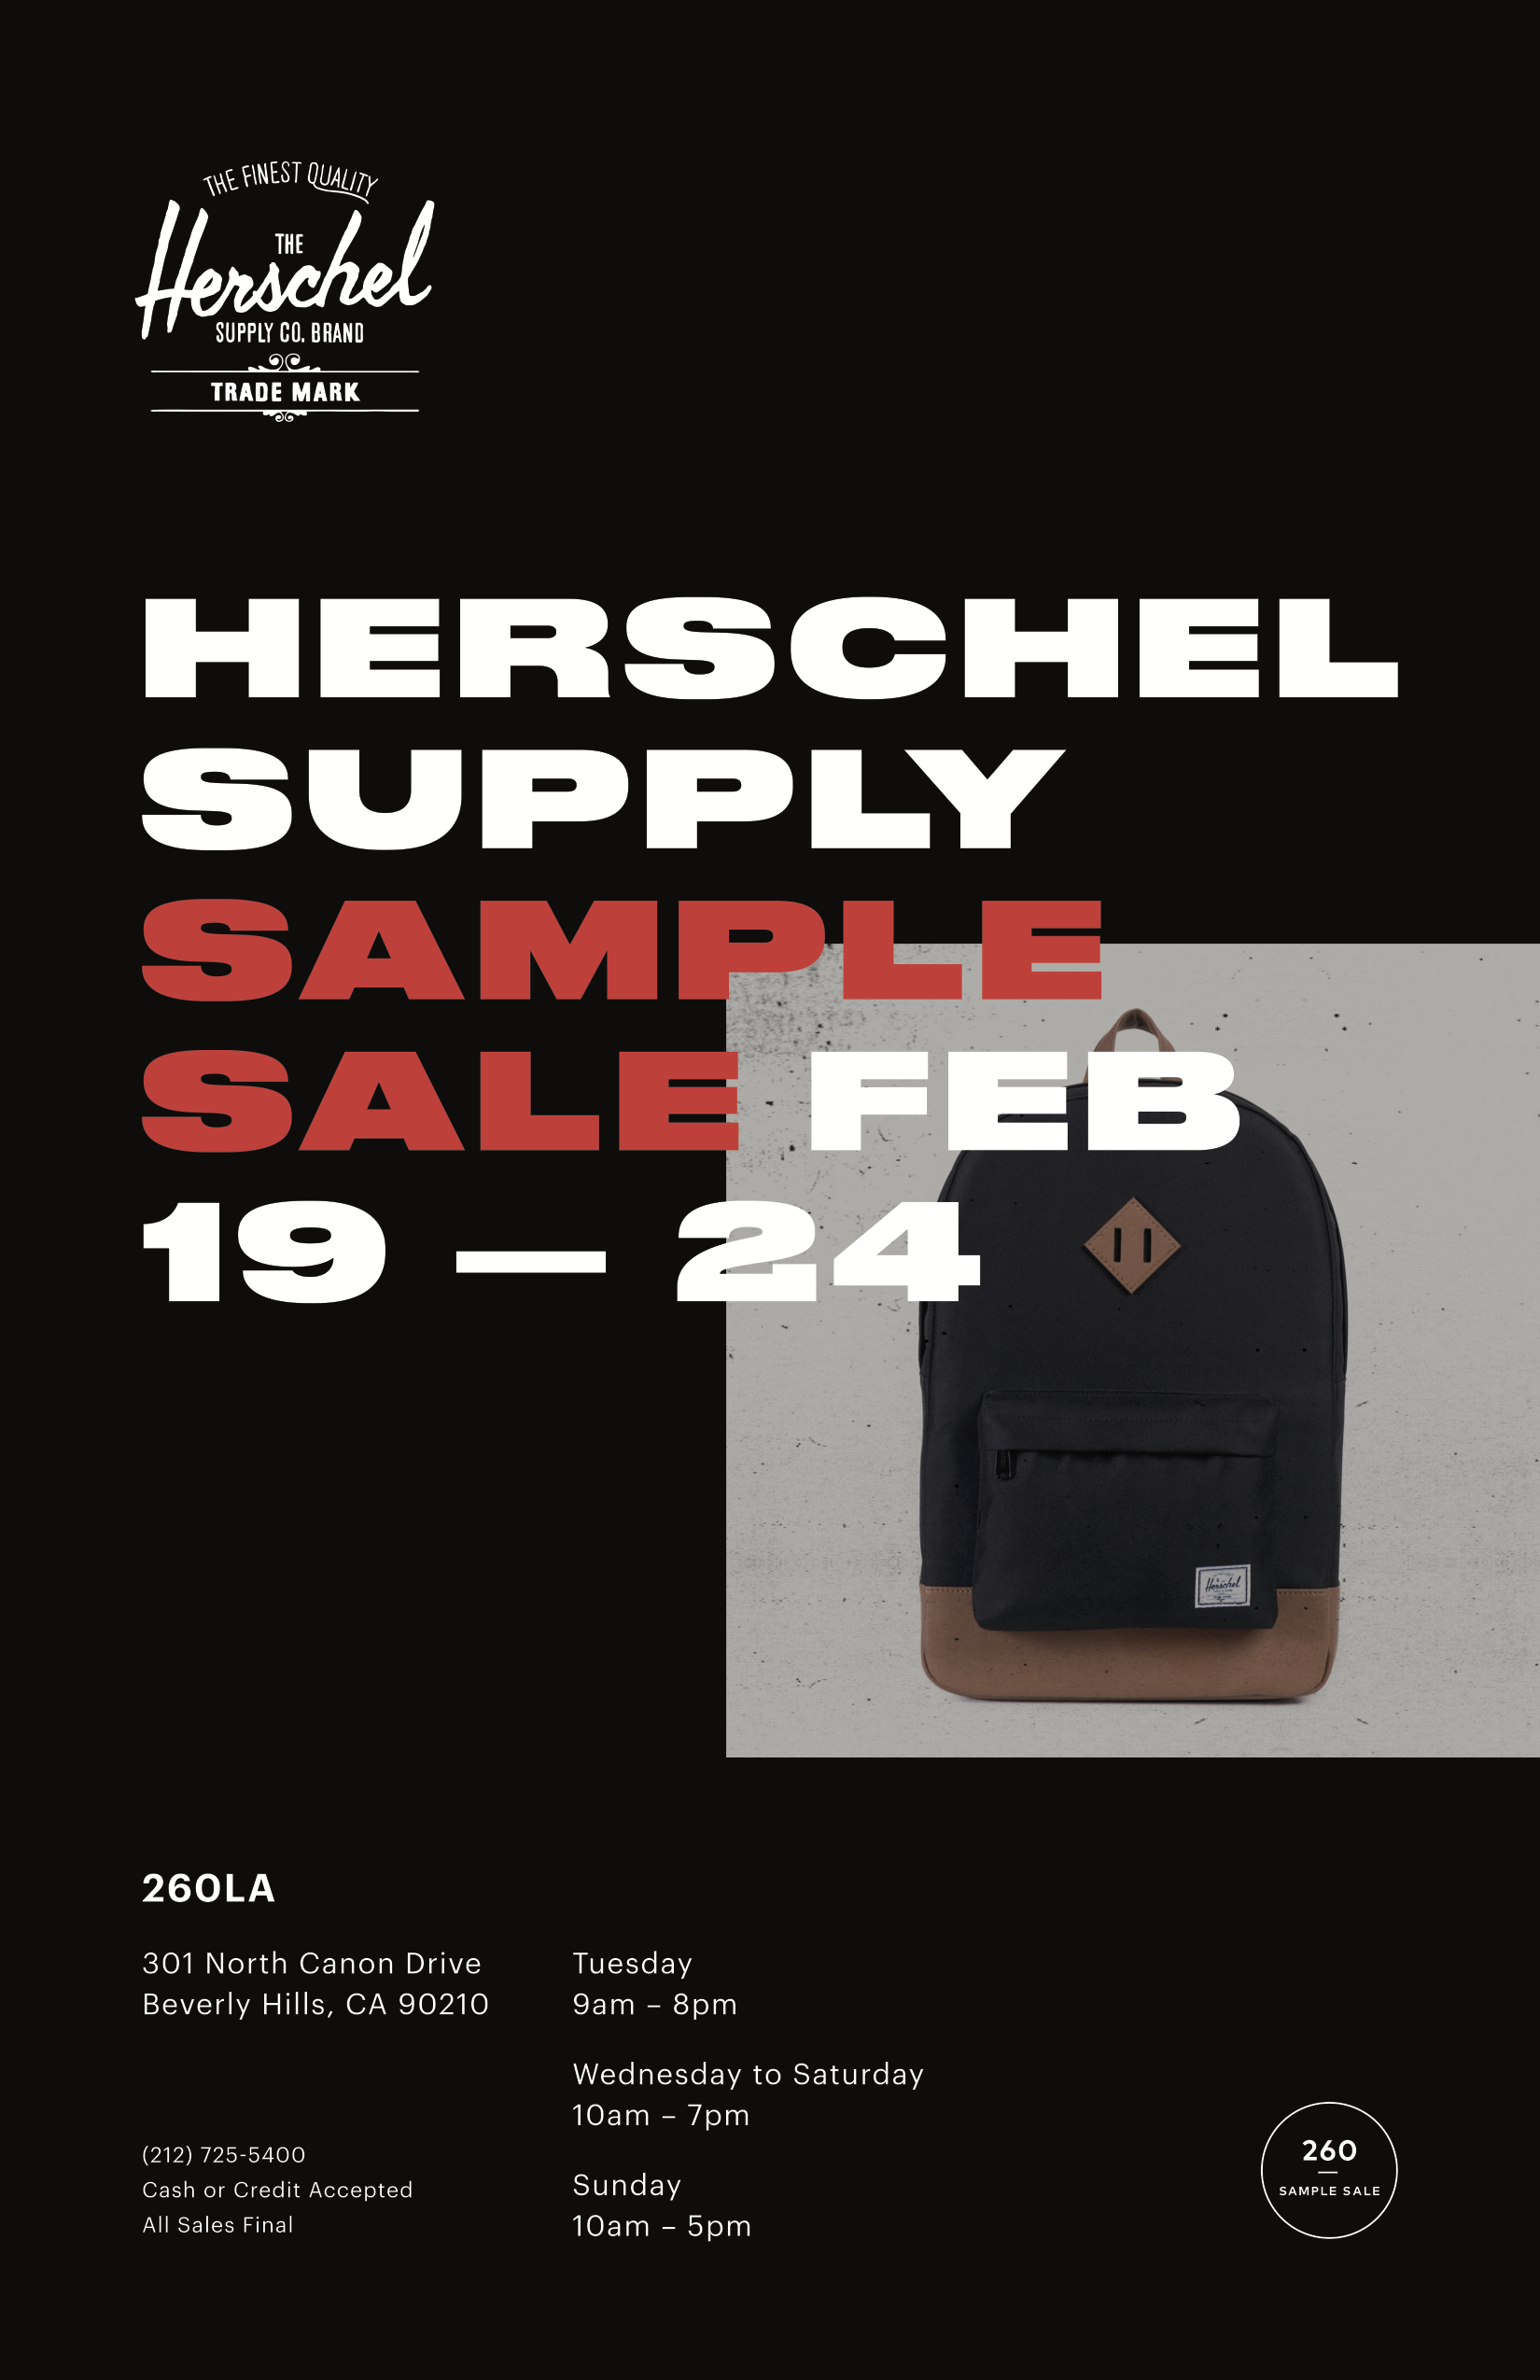 4a3a3d088f PRESS RELEASE HSC S1 19 LA SAMPLE SALE .png